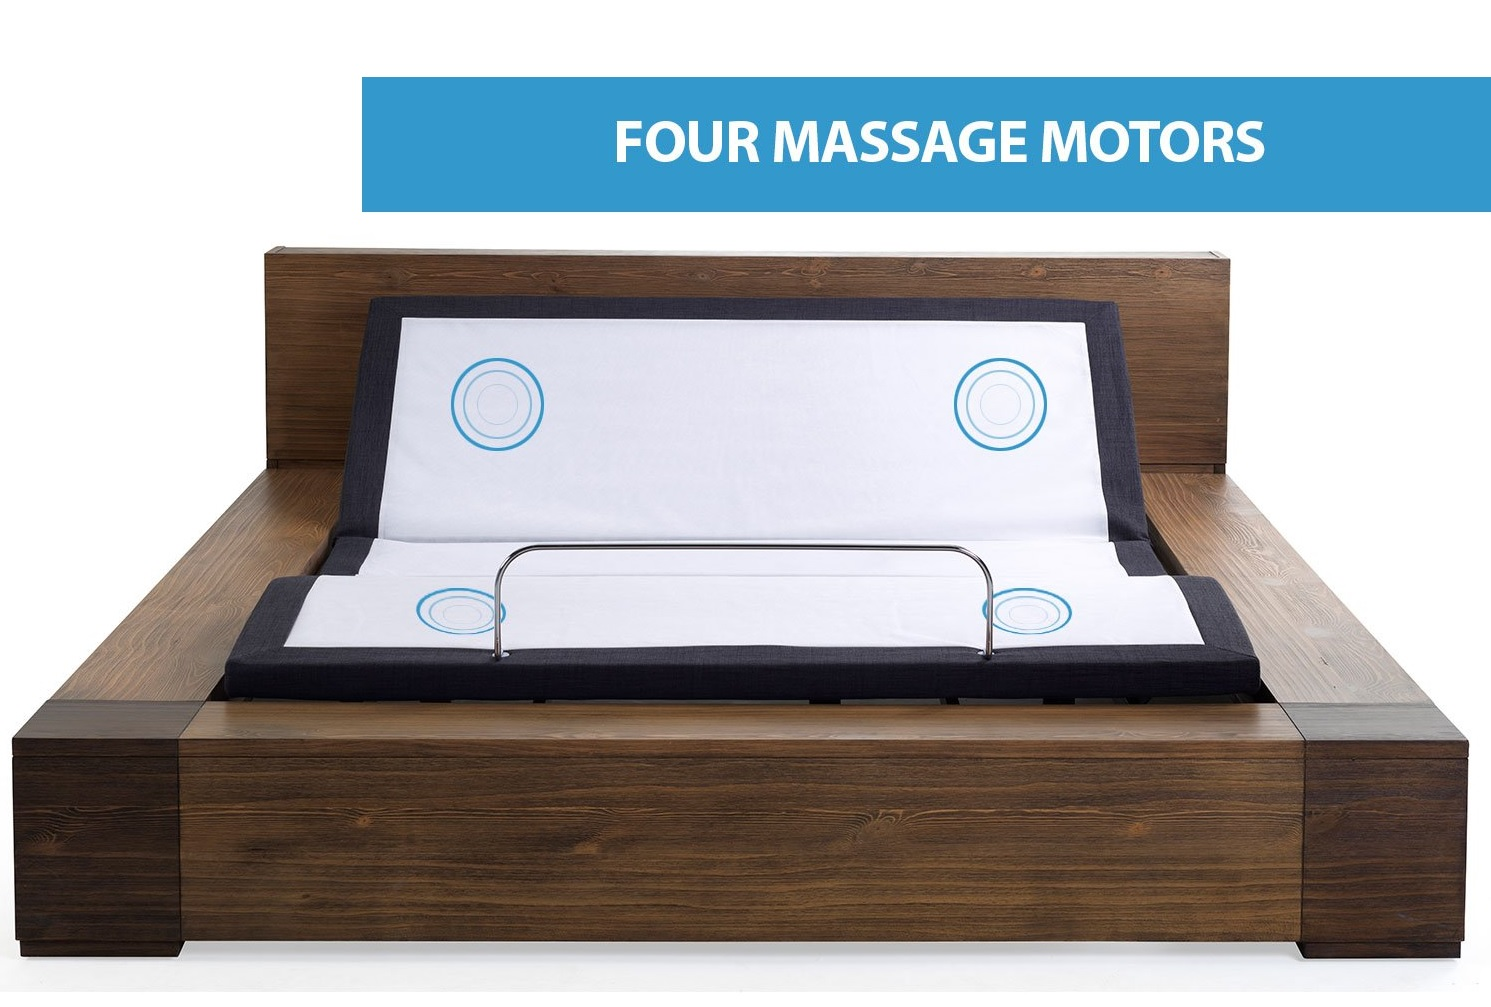 Blissful Nights Adjustable Bed Reviews - 4 Massage Motors